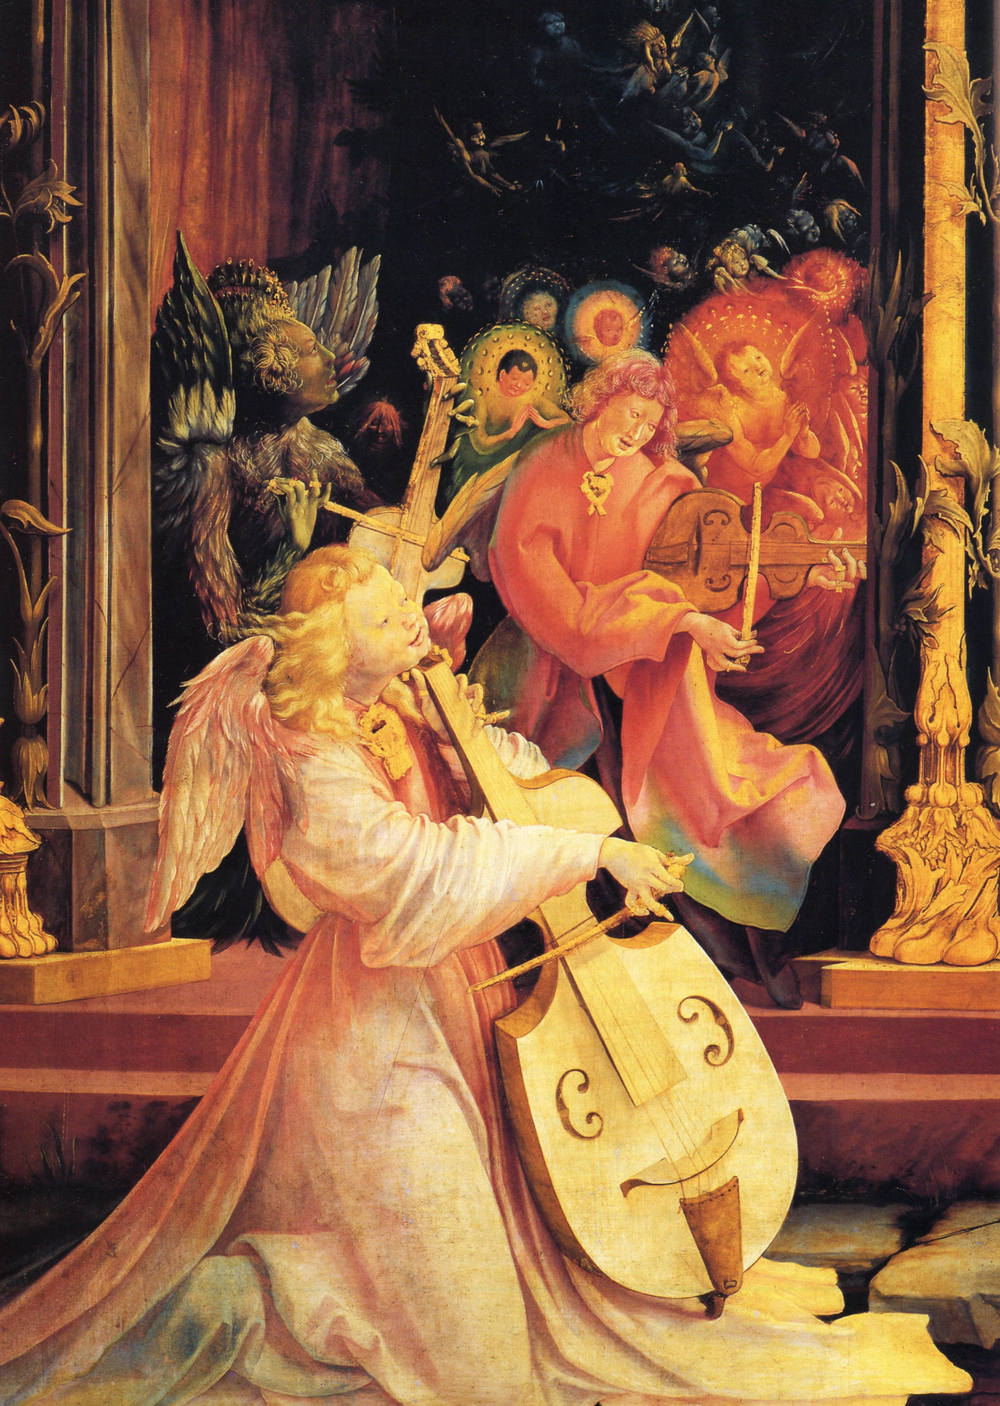 """Detail from """"Concert of Angels and the Nativity,"""" by Matthias Gr ünewald, on the Isenheim Altarpiece (1512-1516)"""